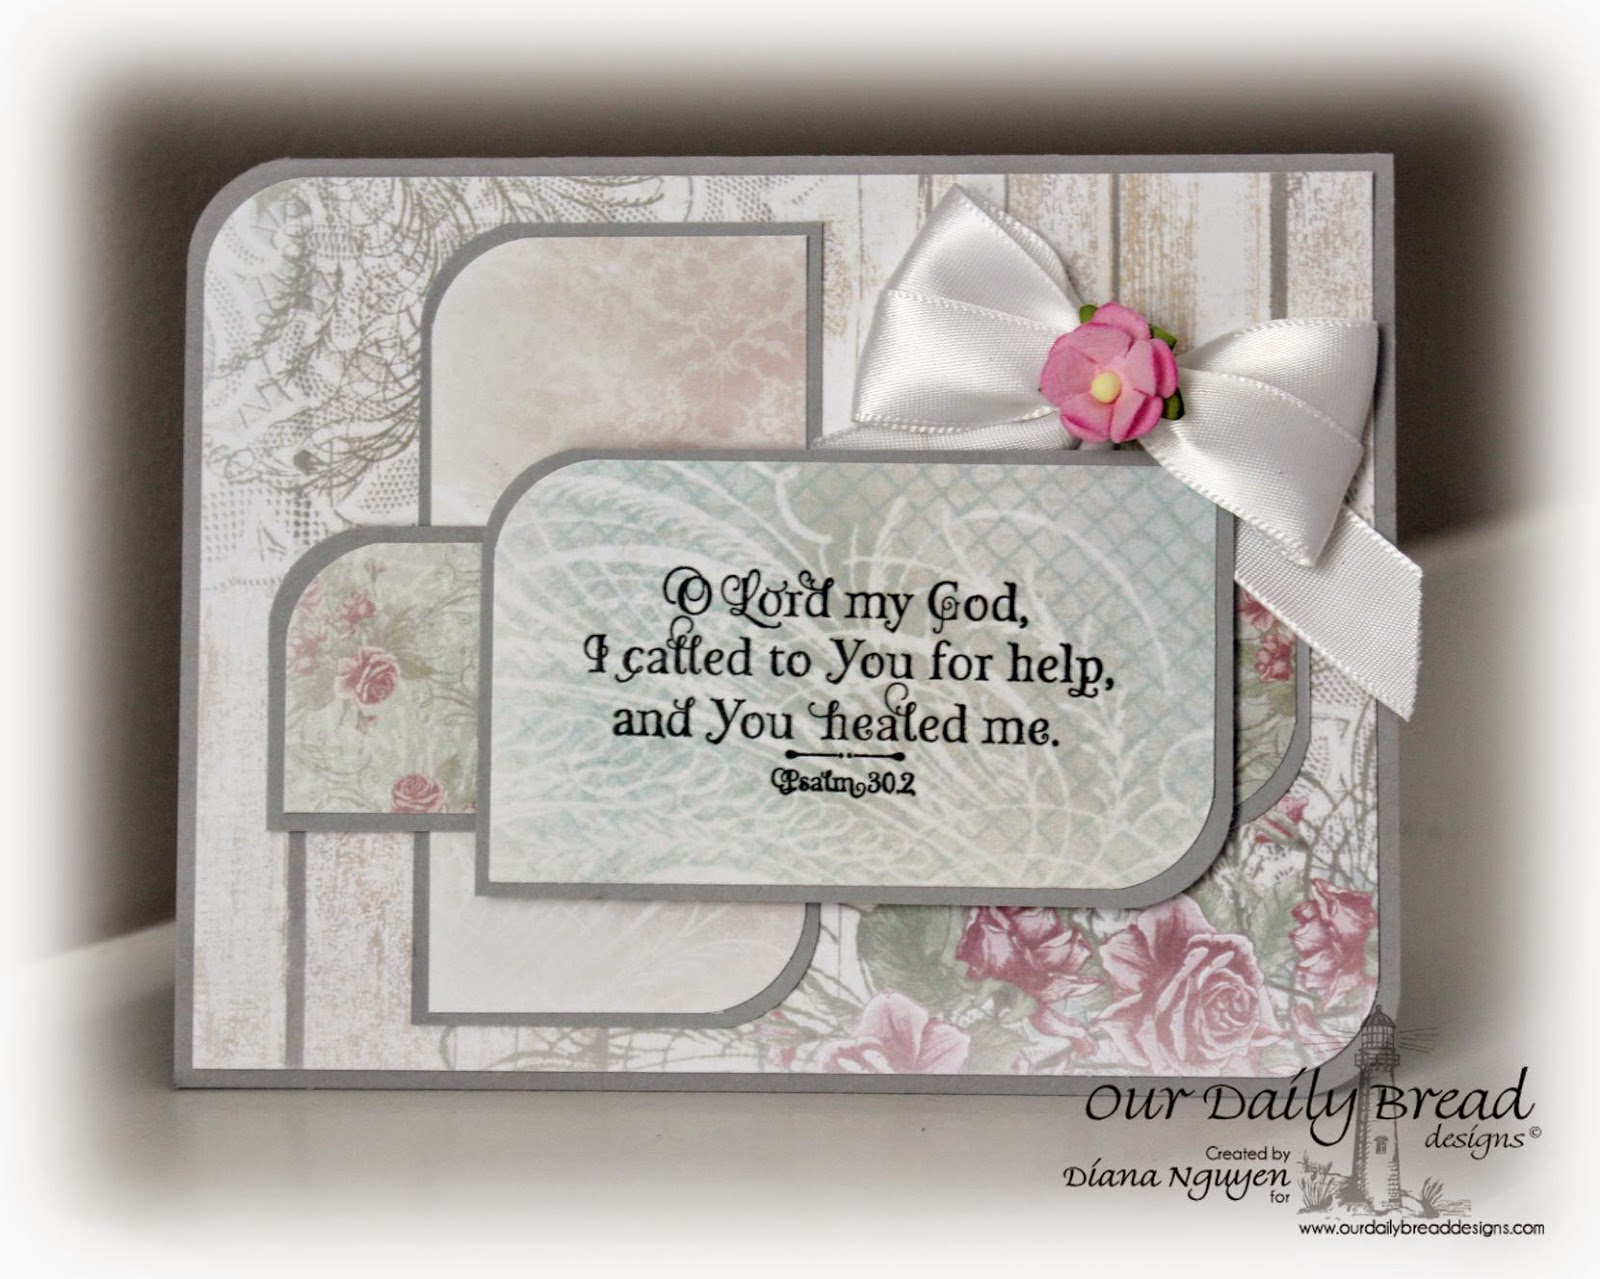 Our Daily Bread Designs, Shabby Rose Paper Collection, God Verses, Diana Nguyen